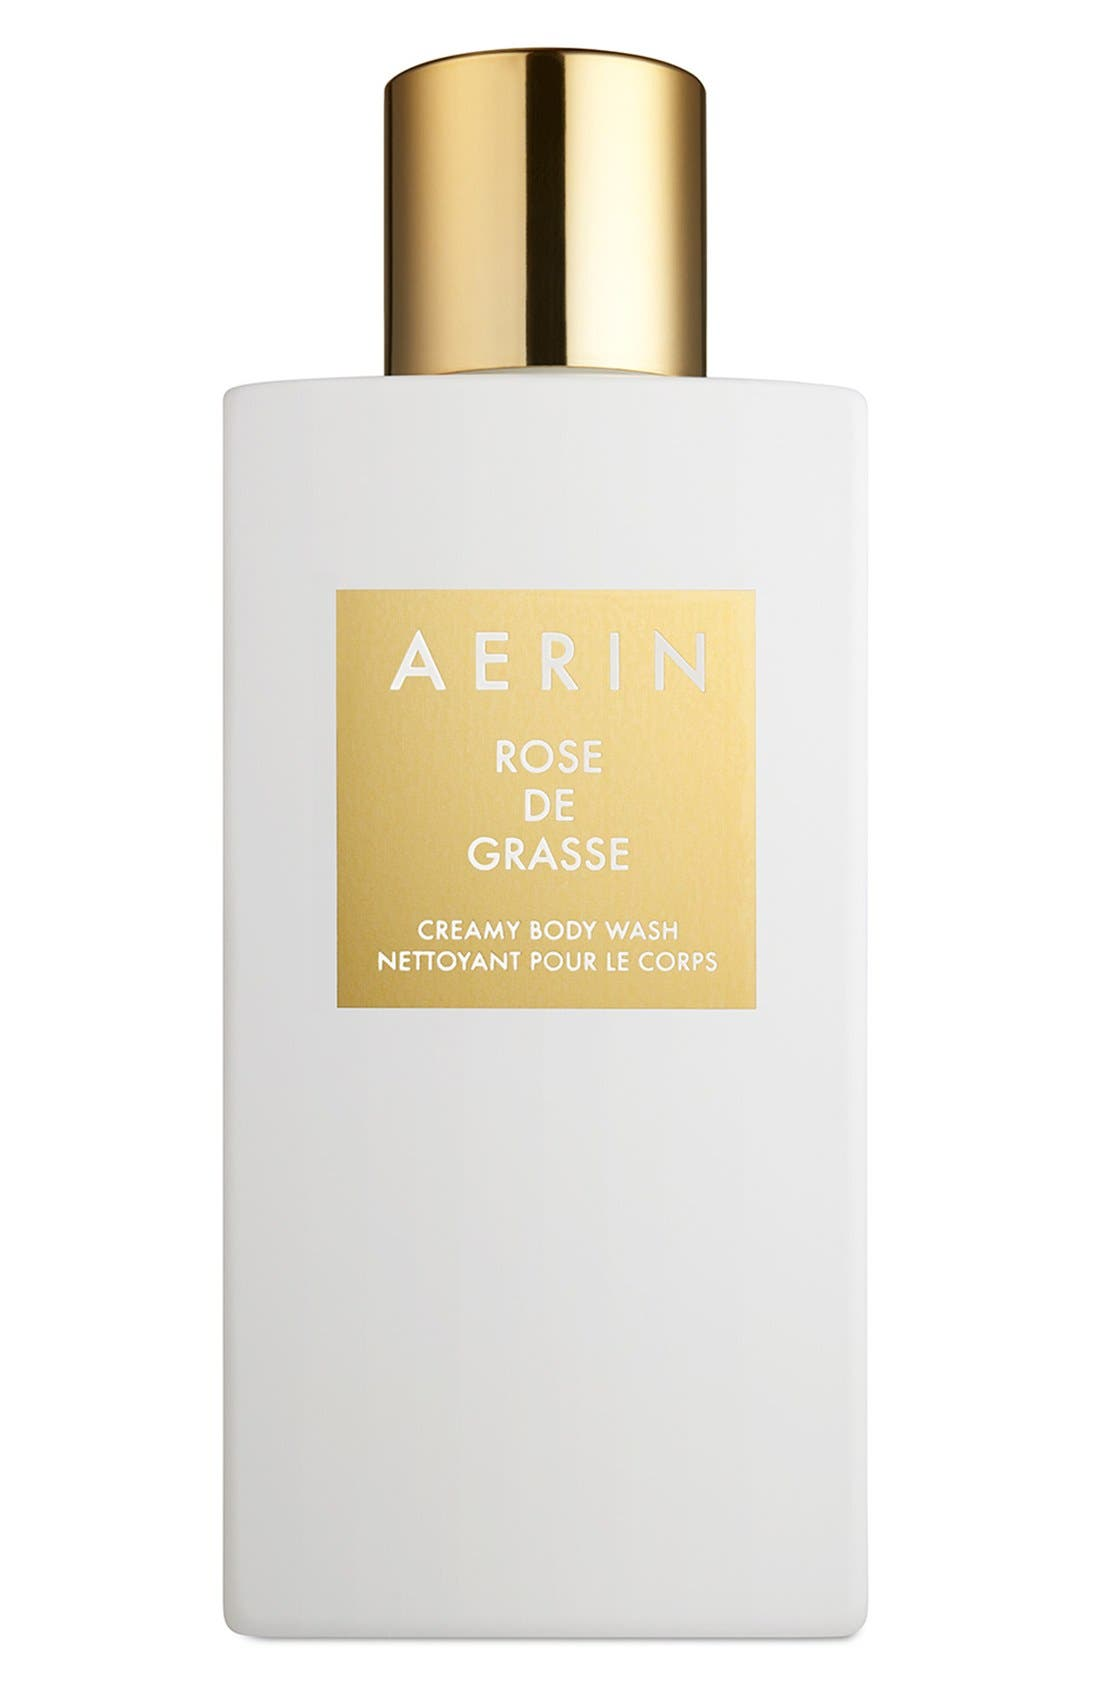 AERIN Beauty Rose de Grasse Body Wash,                             Main thumbnail 1, color,                             000